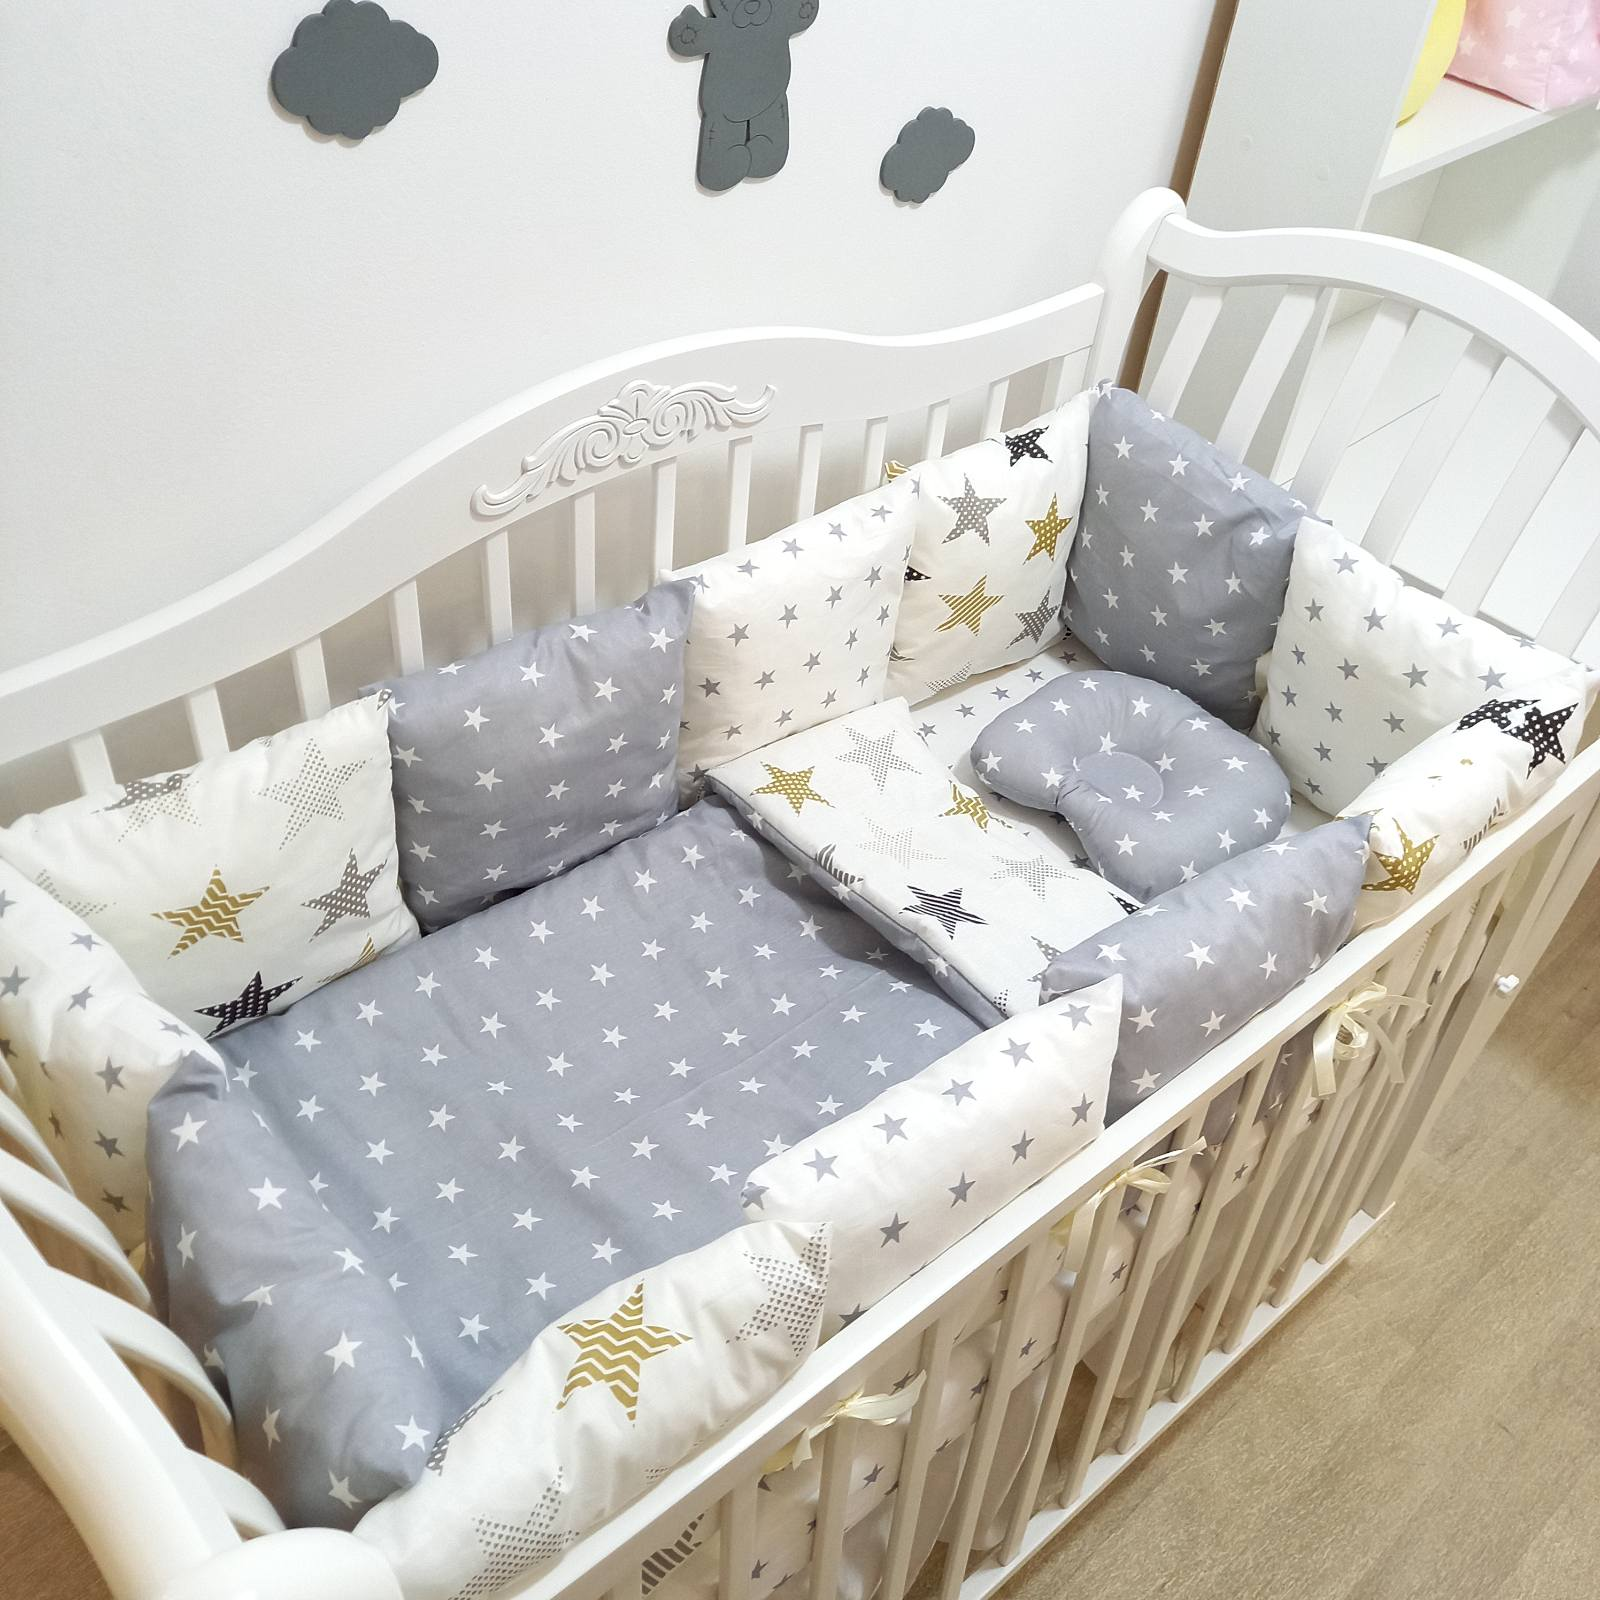 Bortiki in the crib, baby cots, crib boards, bed linen, bumpers in the crib mamdis